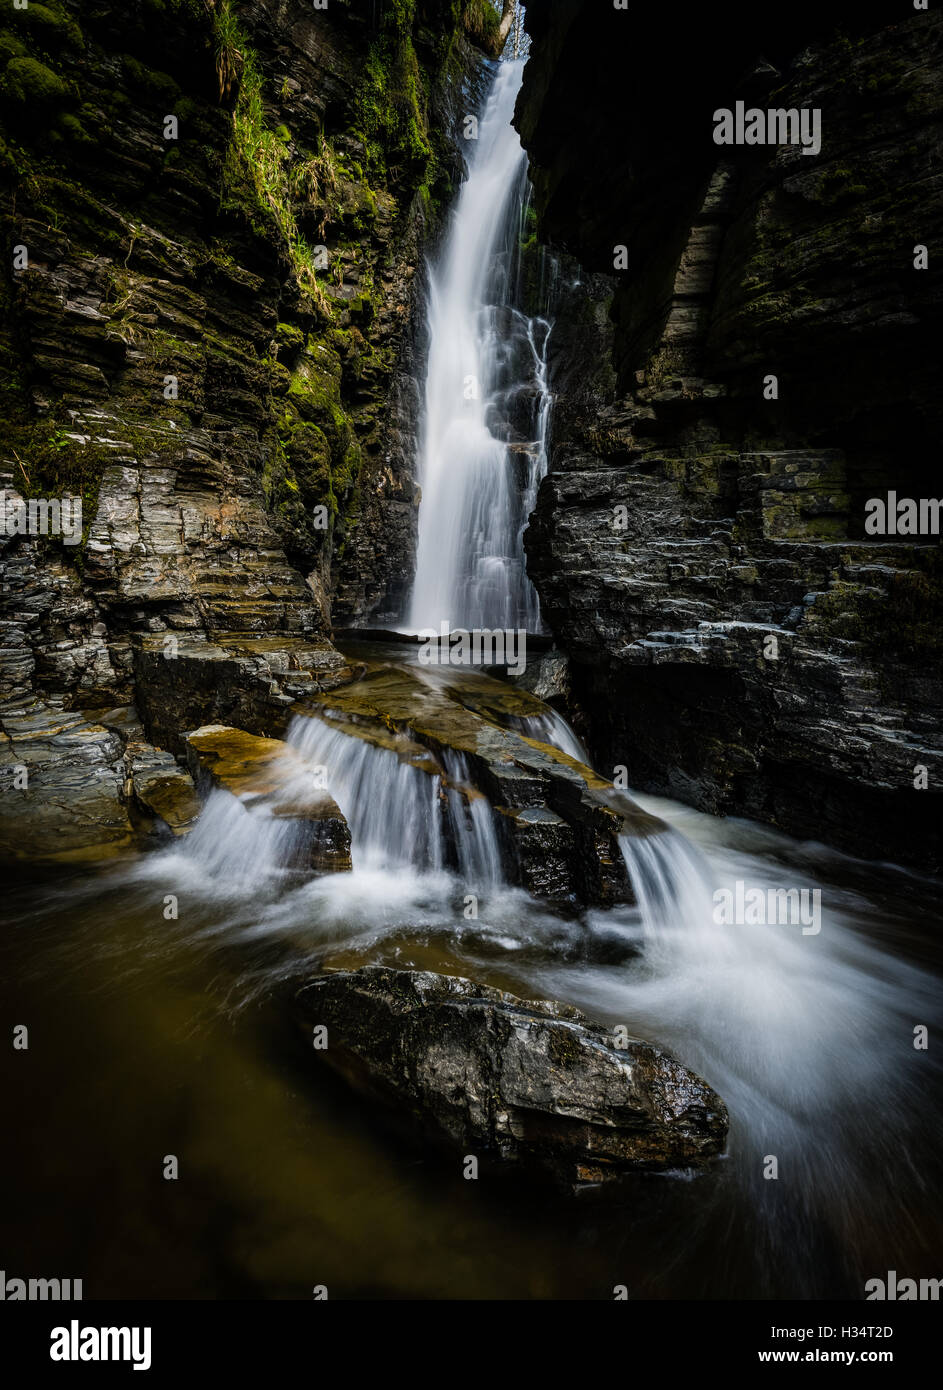 Spout Force waterfall, Whinlatter Pass, English Lake District national park, UK - Stock Image